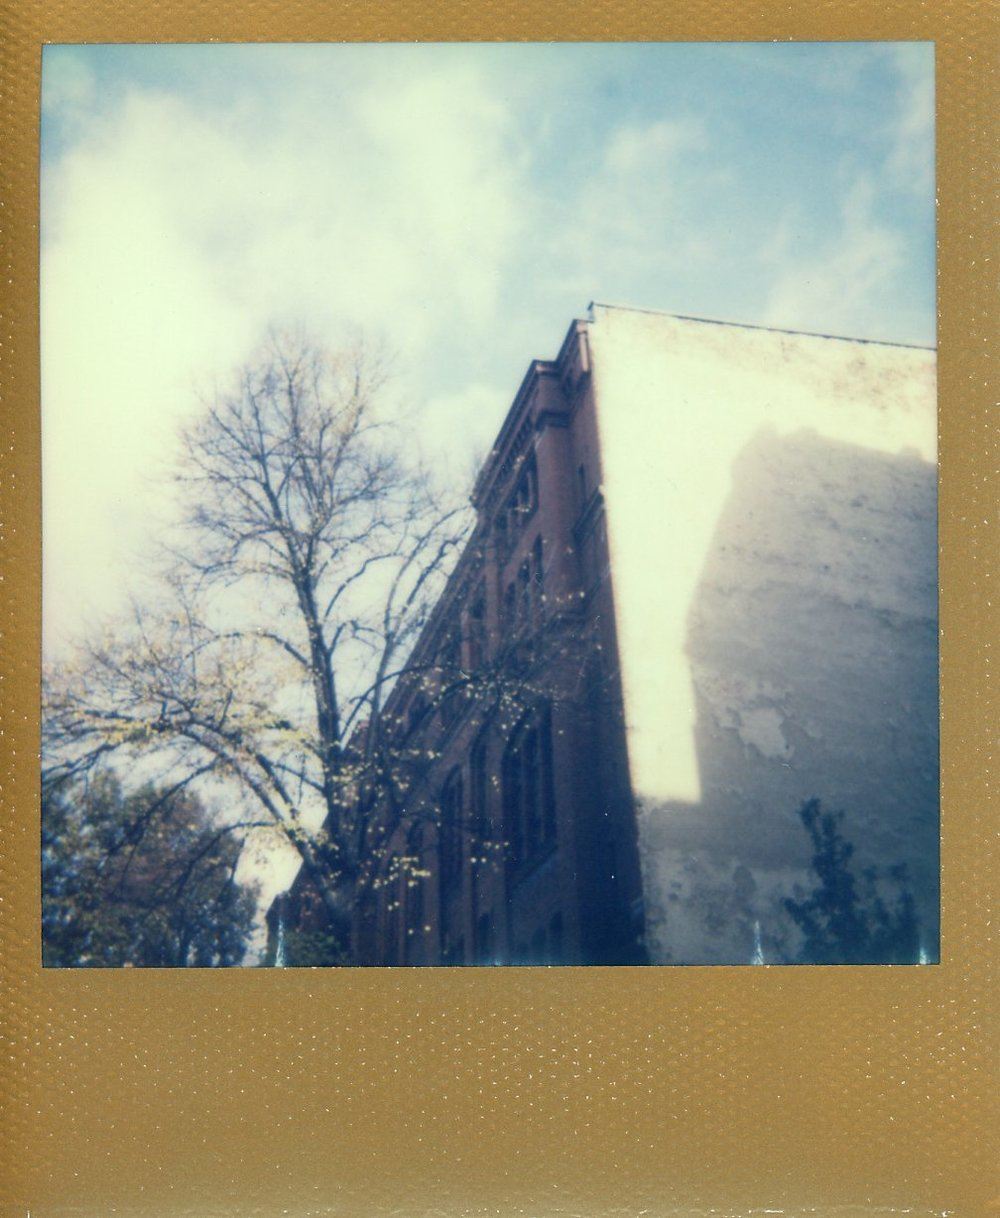 Berlin_Polaroid002.jpg